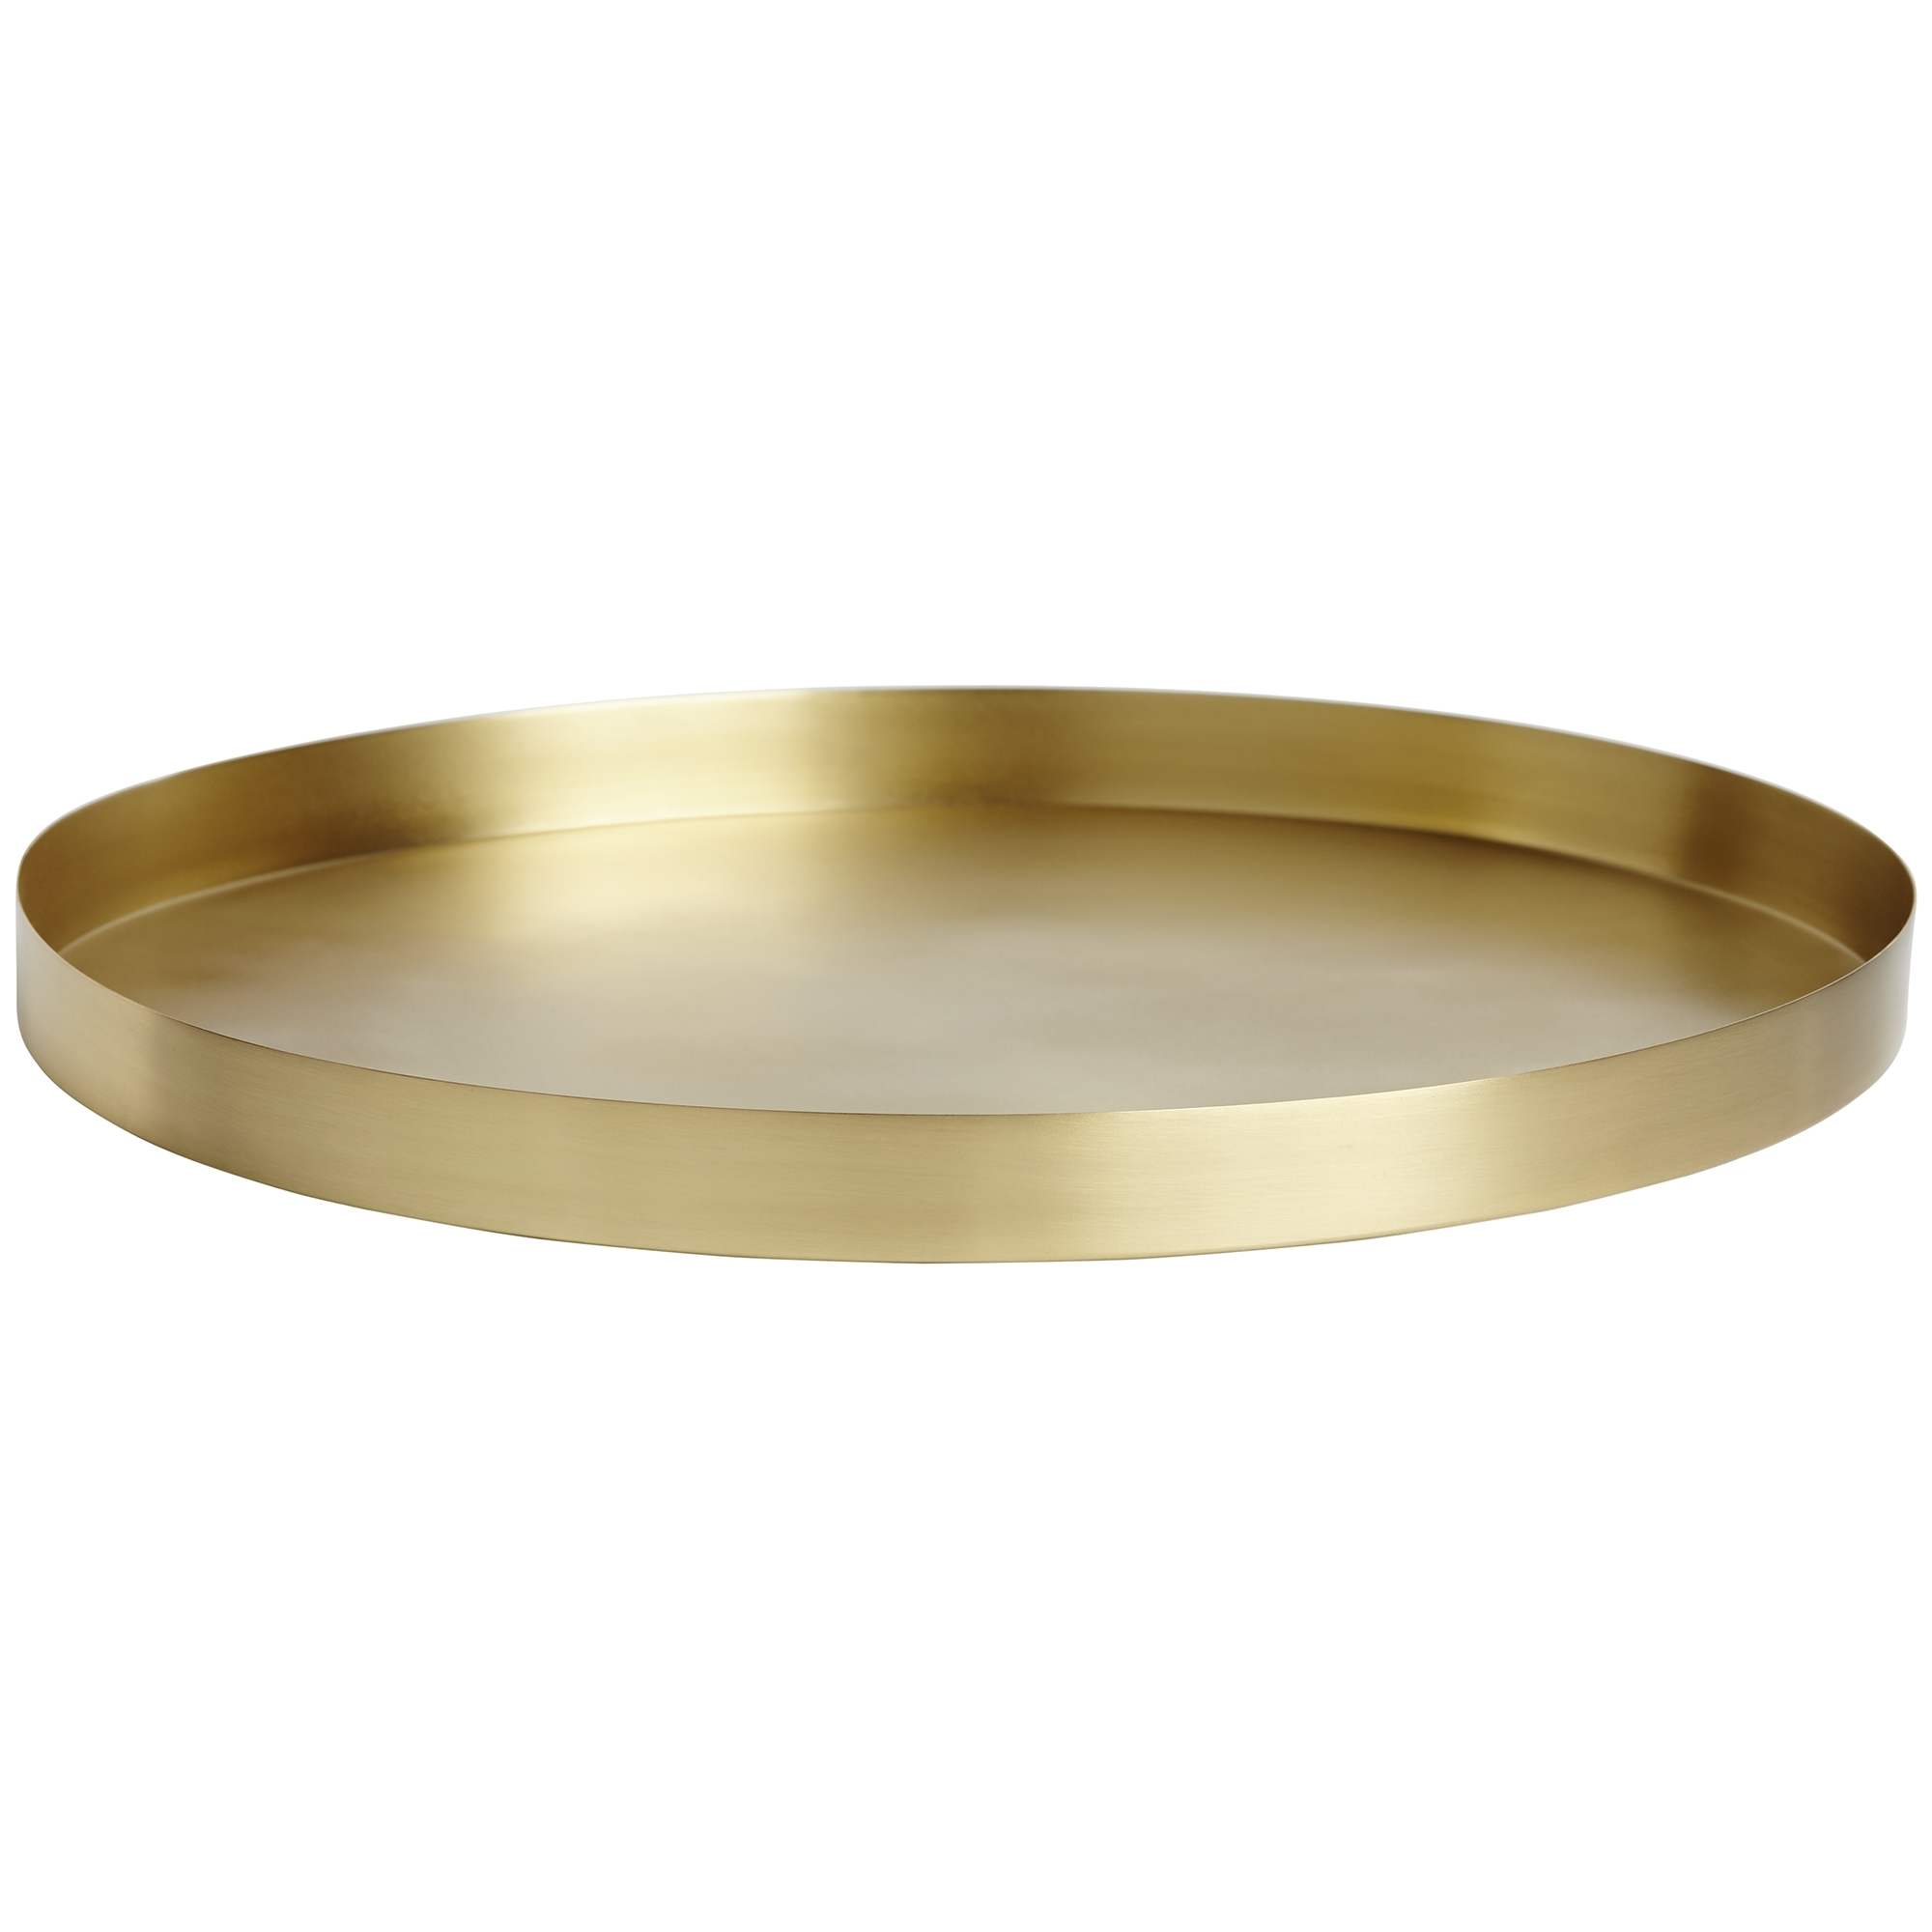 NEW-Geo-Round-Metal-Serving-Tray-Behr-amp-Co-Kitchen-amp-Butler-Trays thumbnail 6